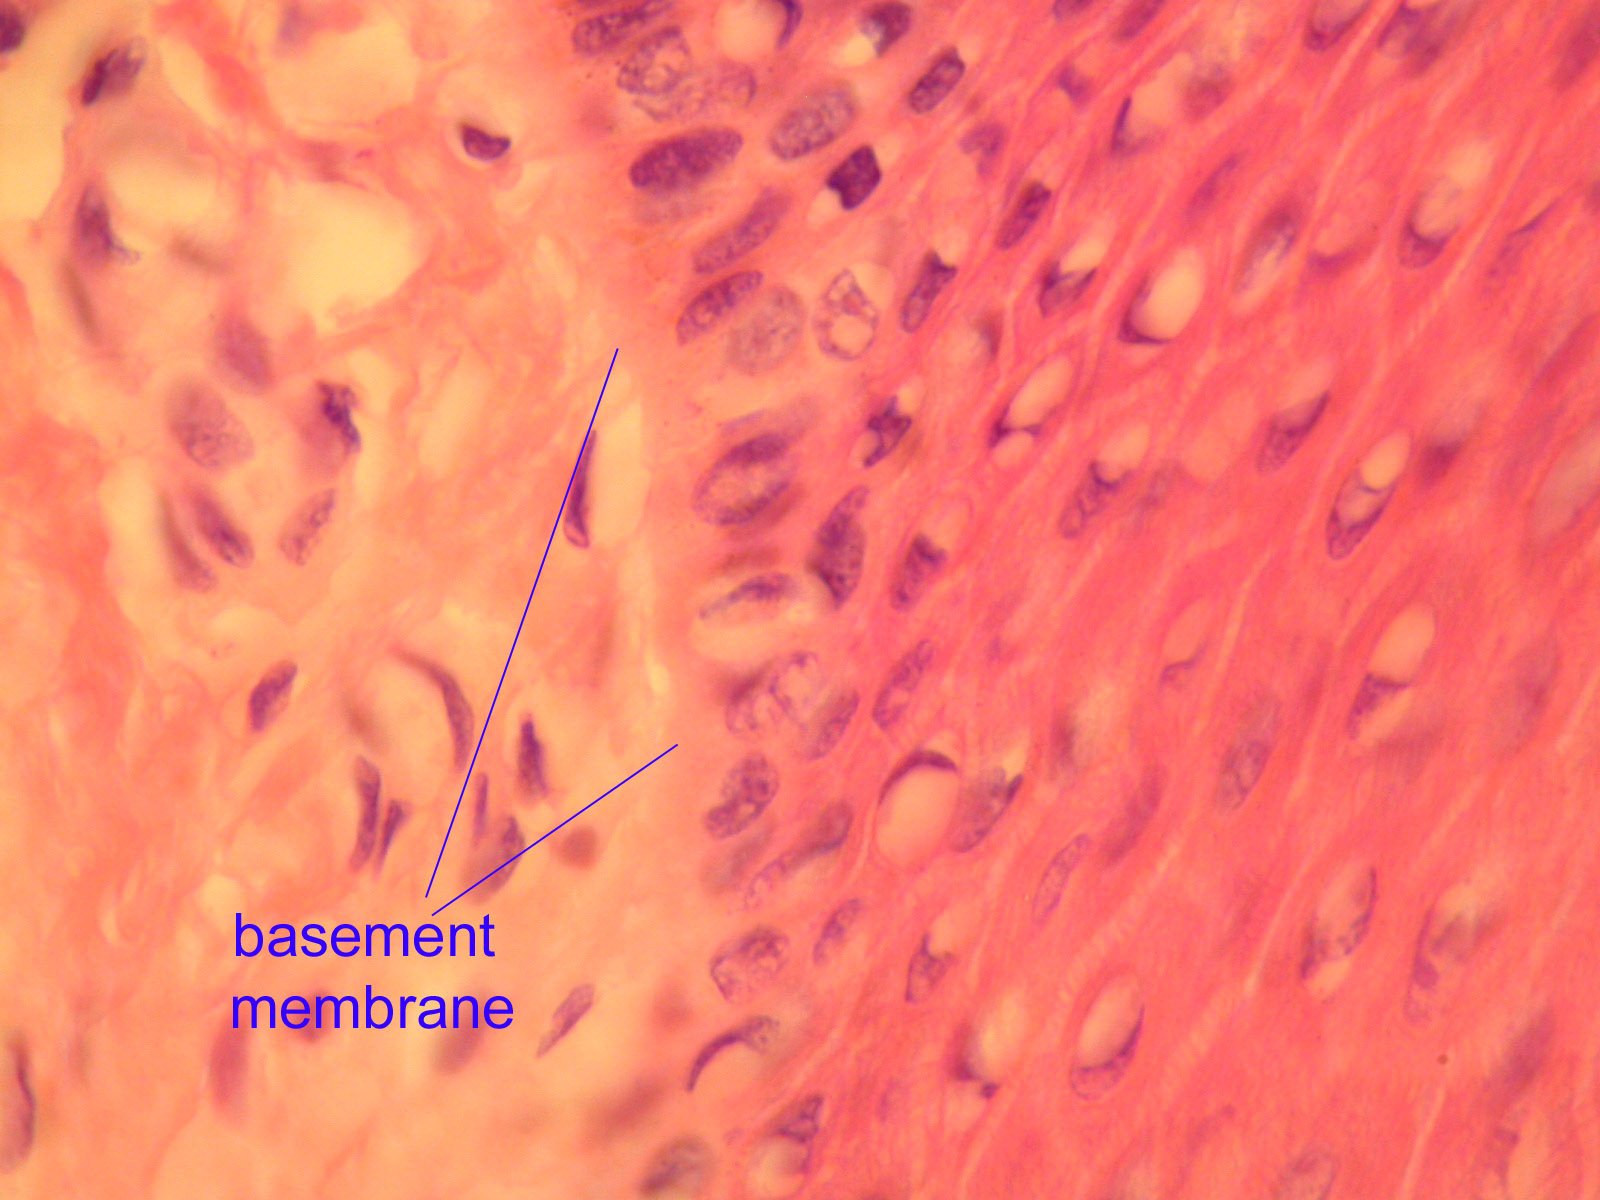 collagen 4 a 2 is used in the basement membrane separating epithelia